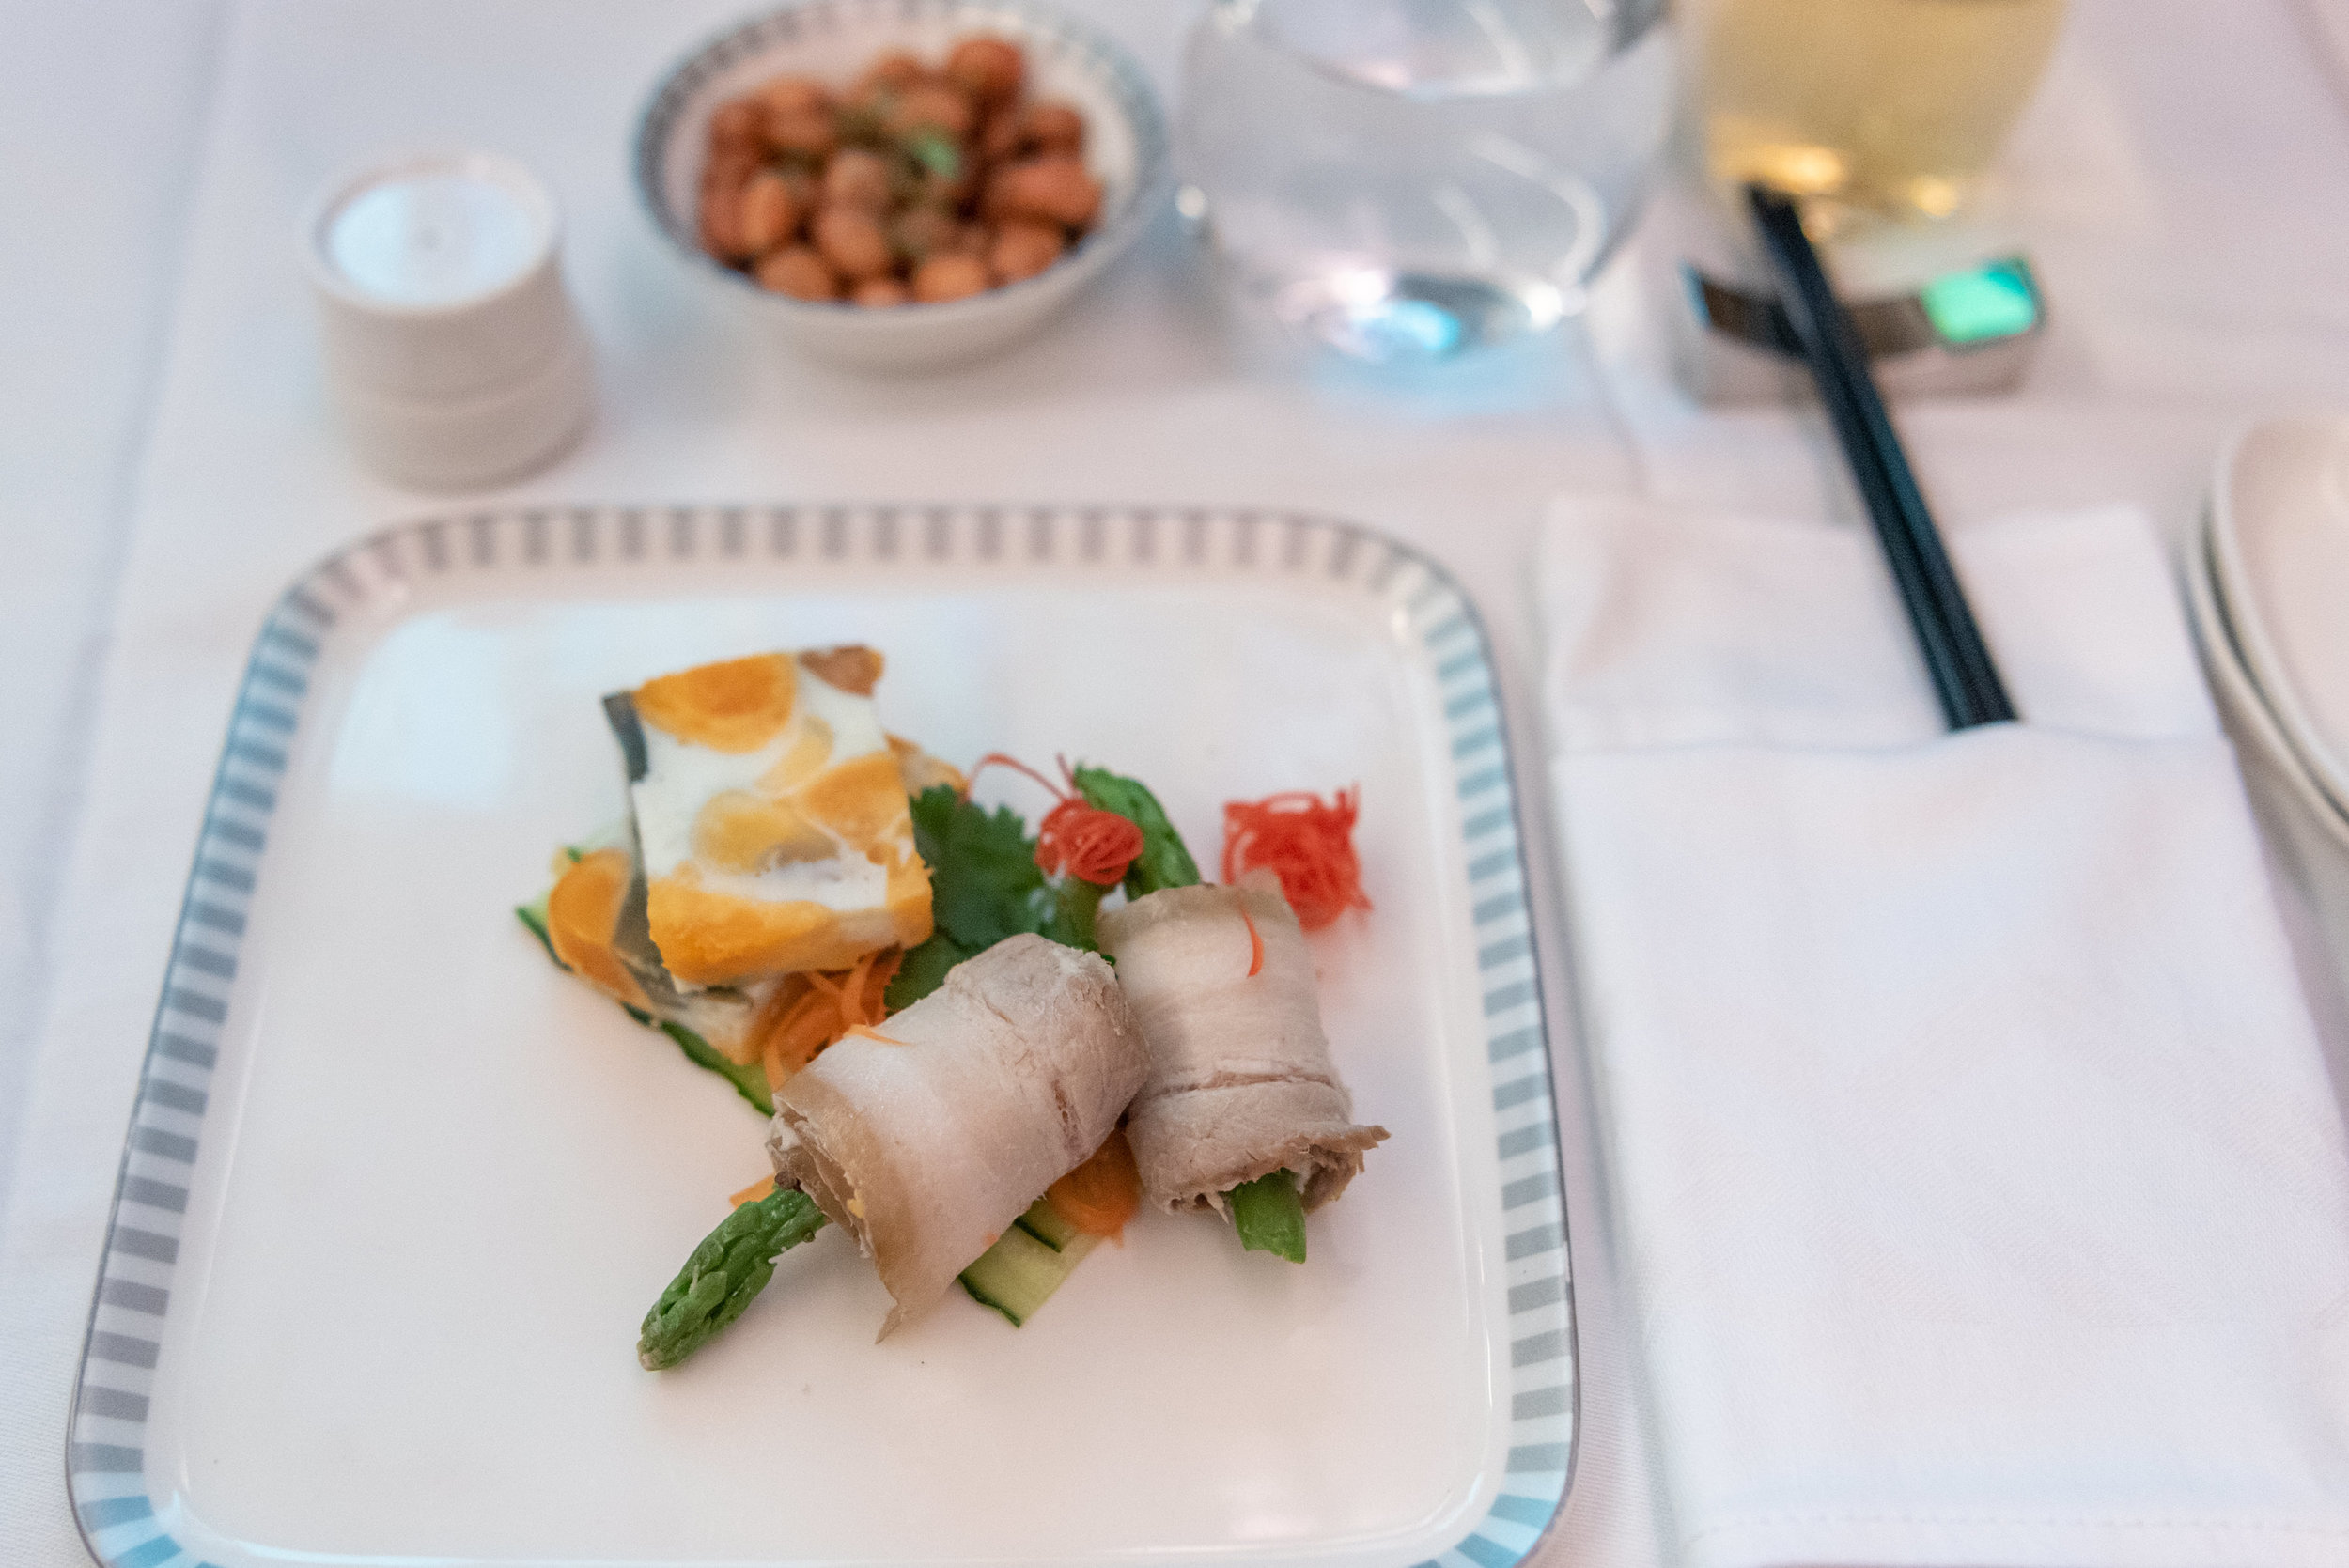 Chili Pork and Asparagus Roll  Singapore Airlines Business Class SQ833 A380-800 - PVG to SIN